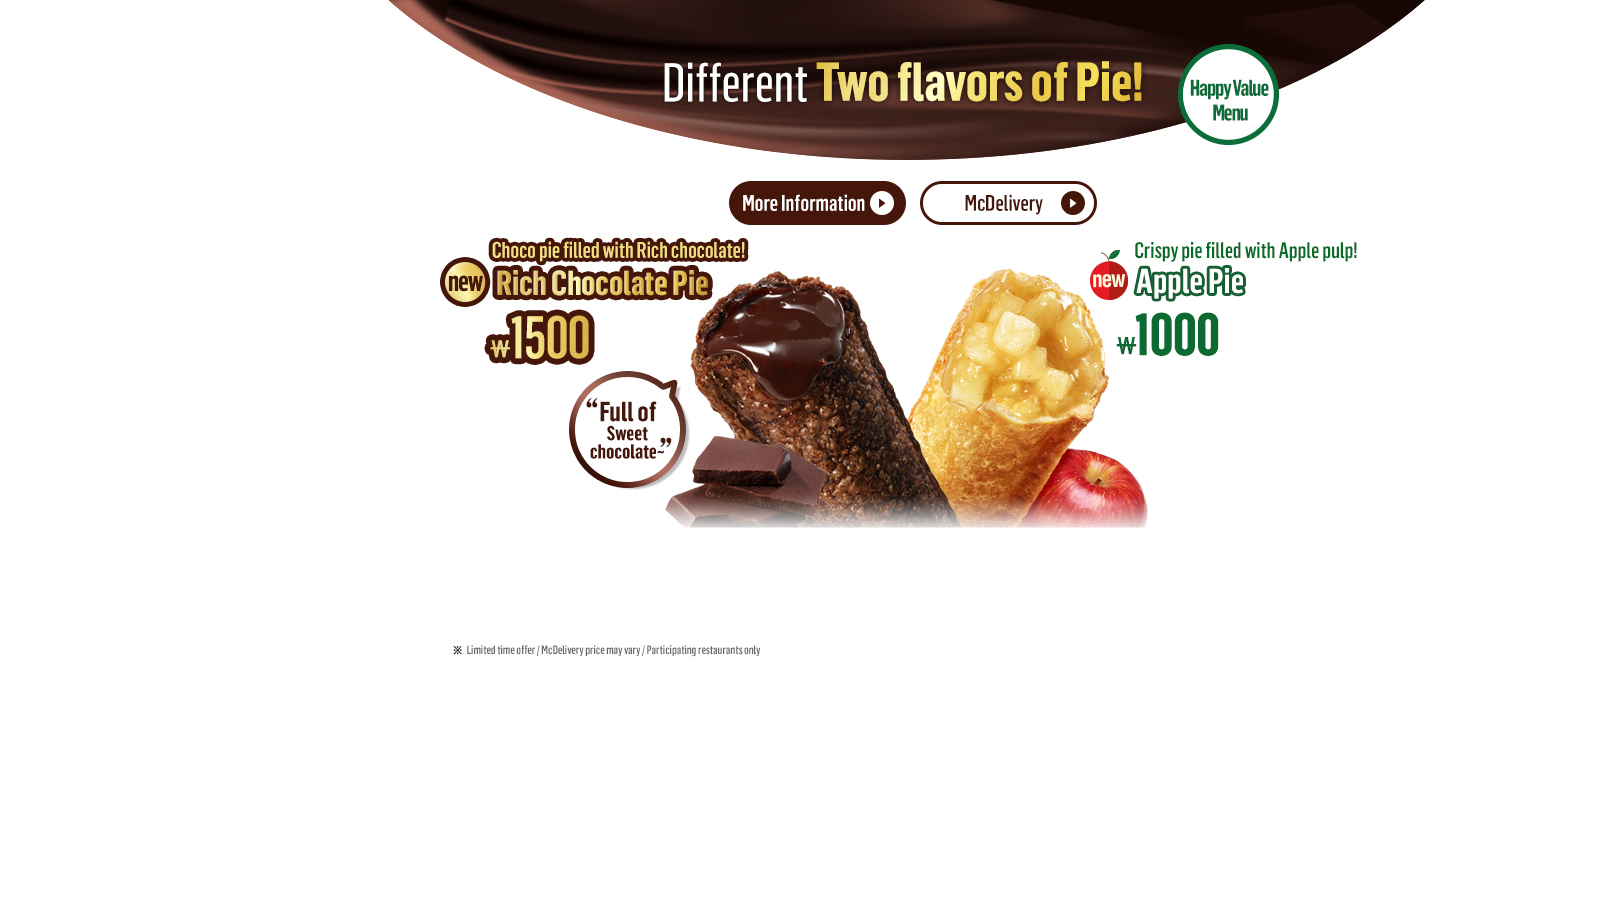 Different Two flavors of Pie!